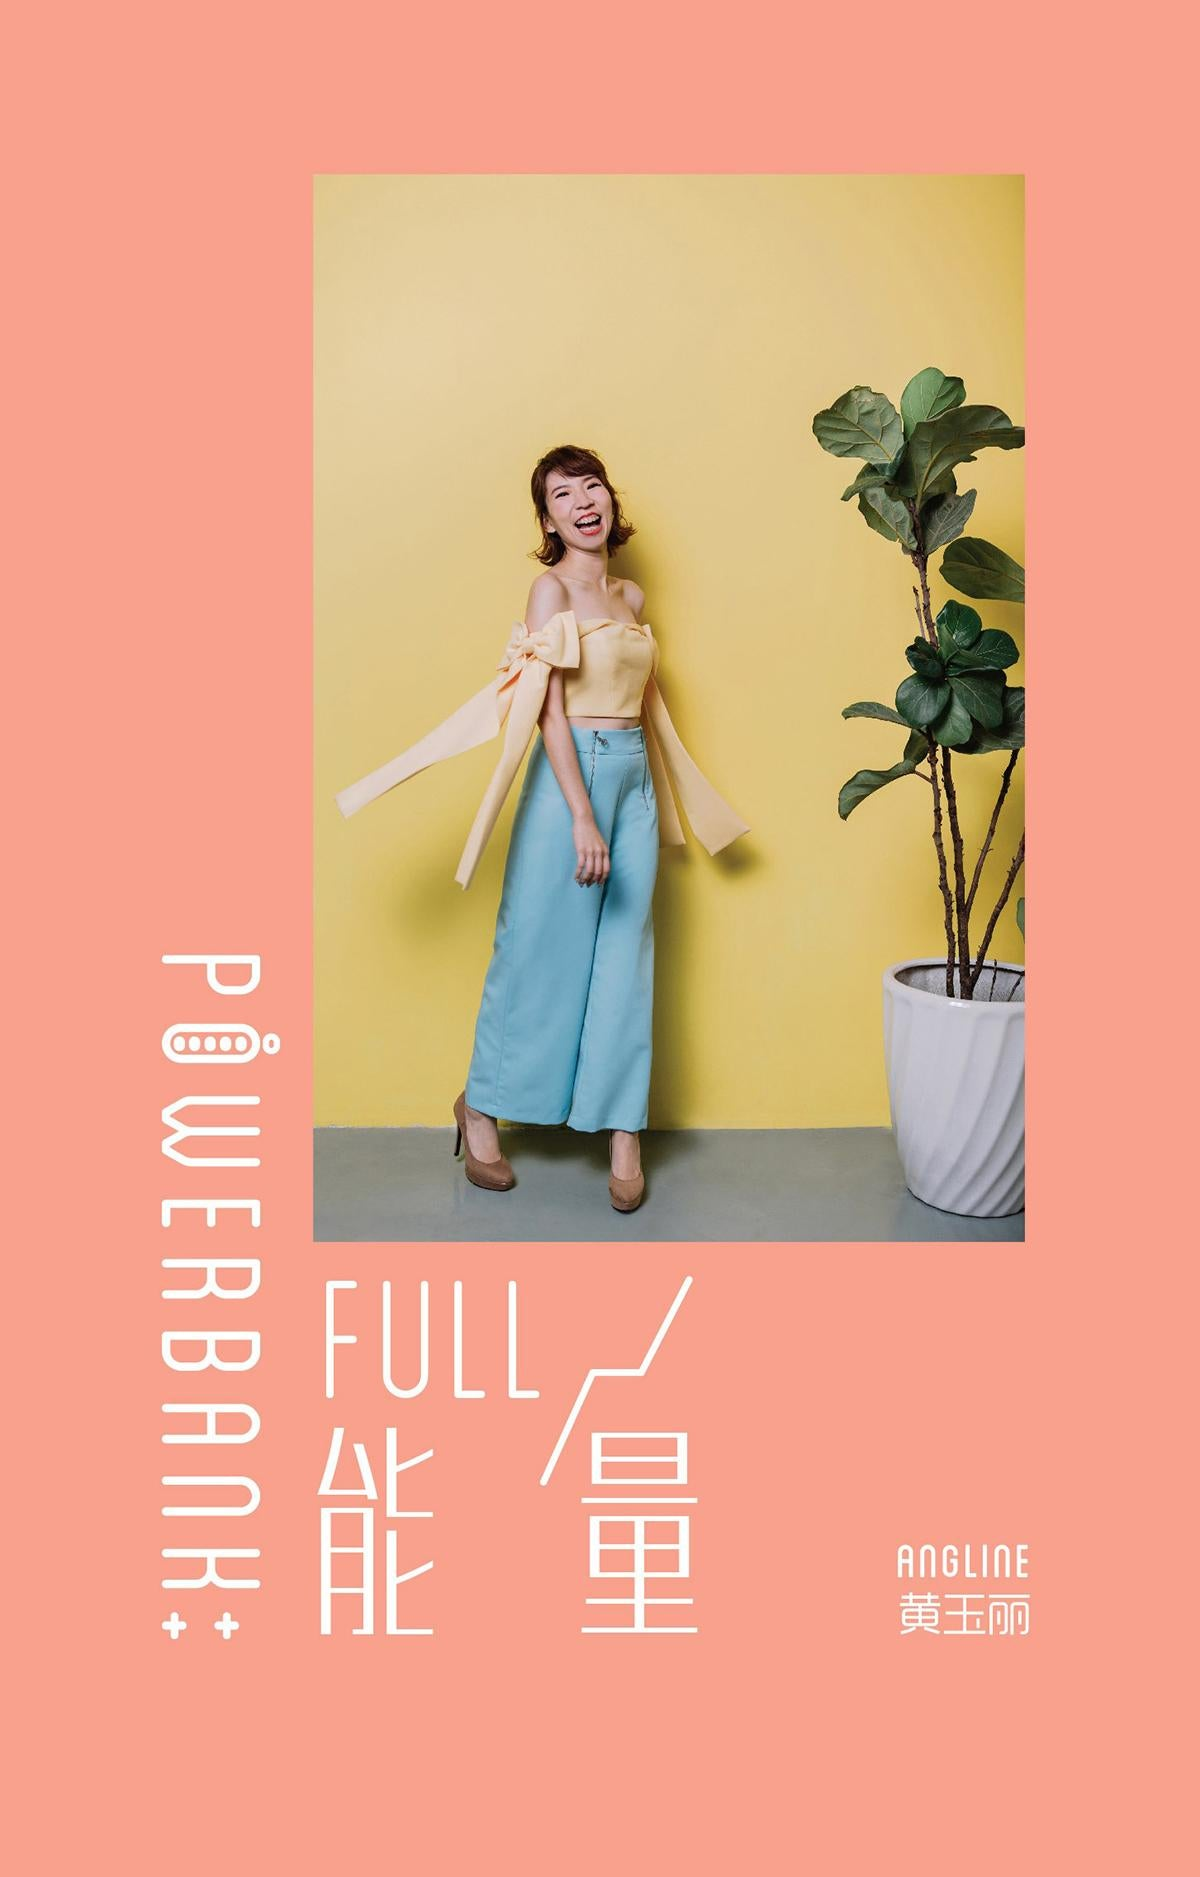 PowerBank:Full能量